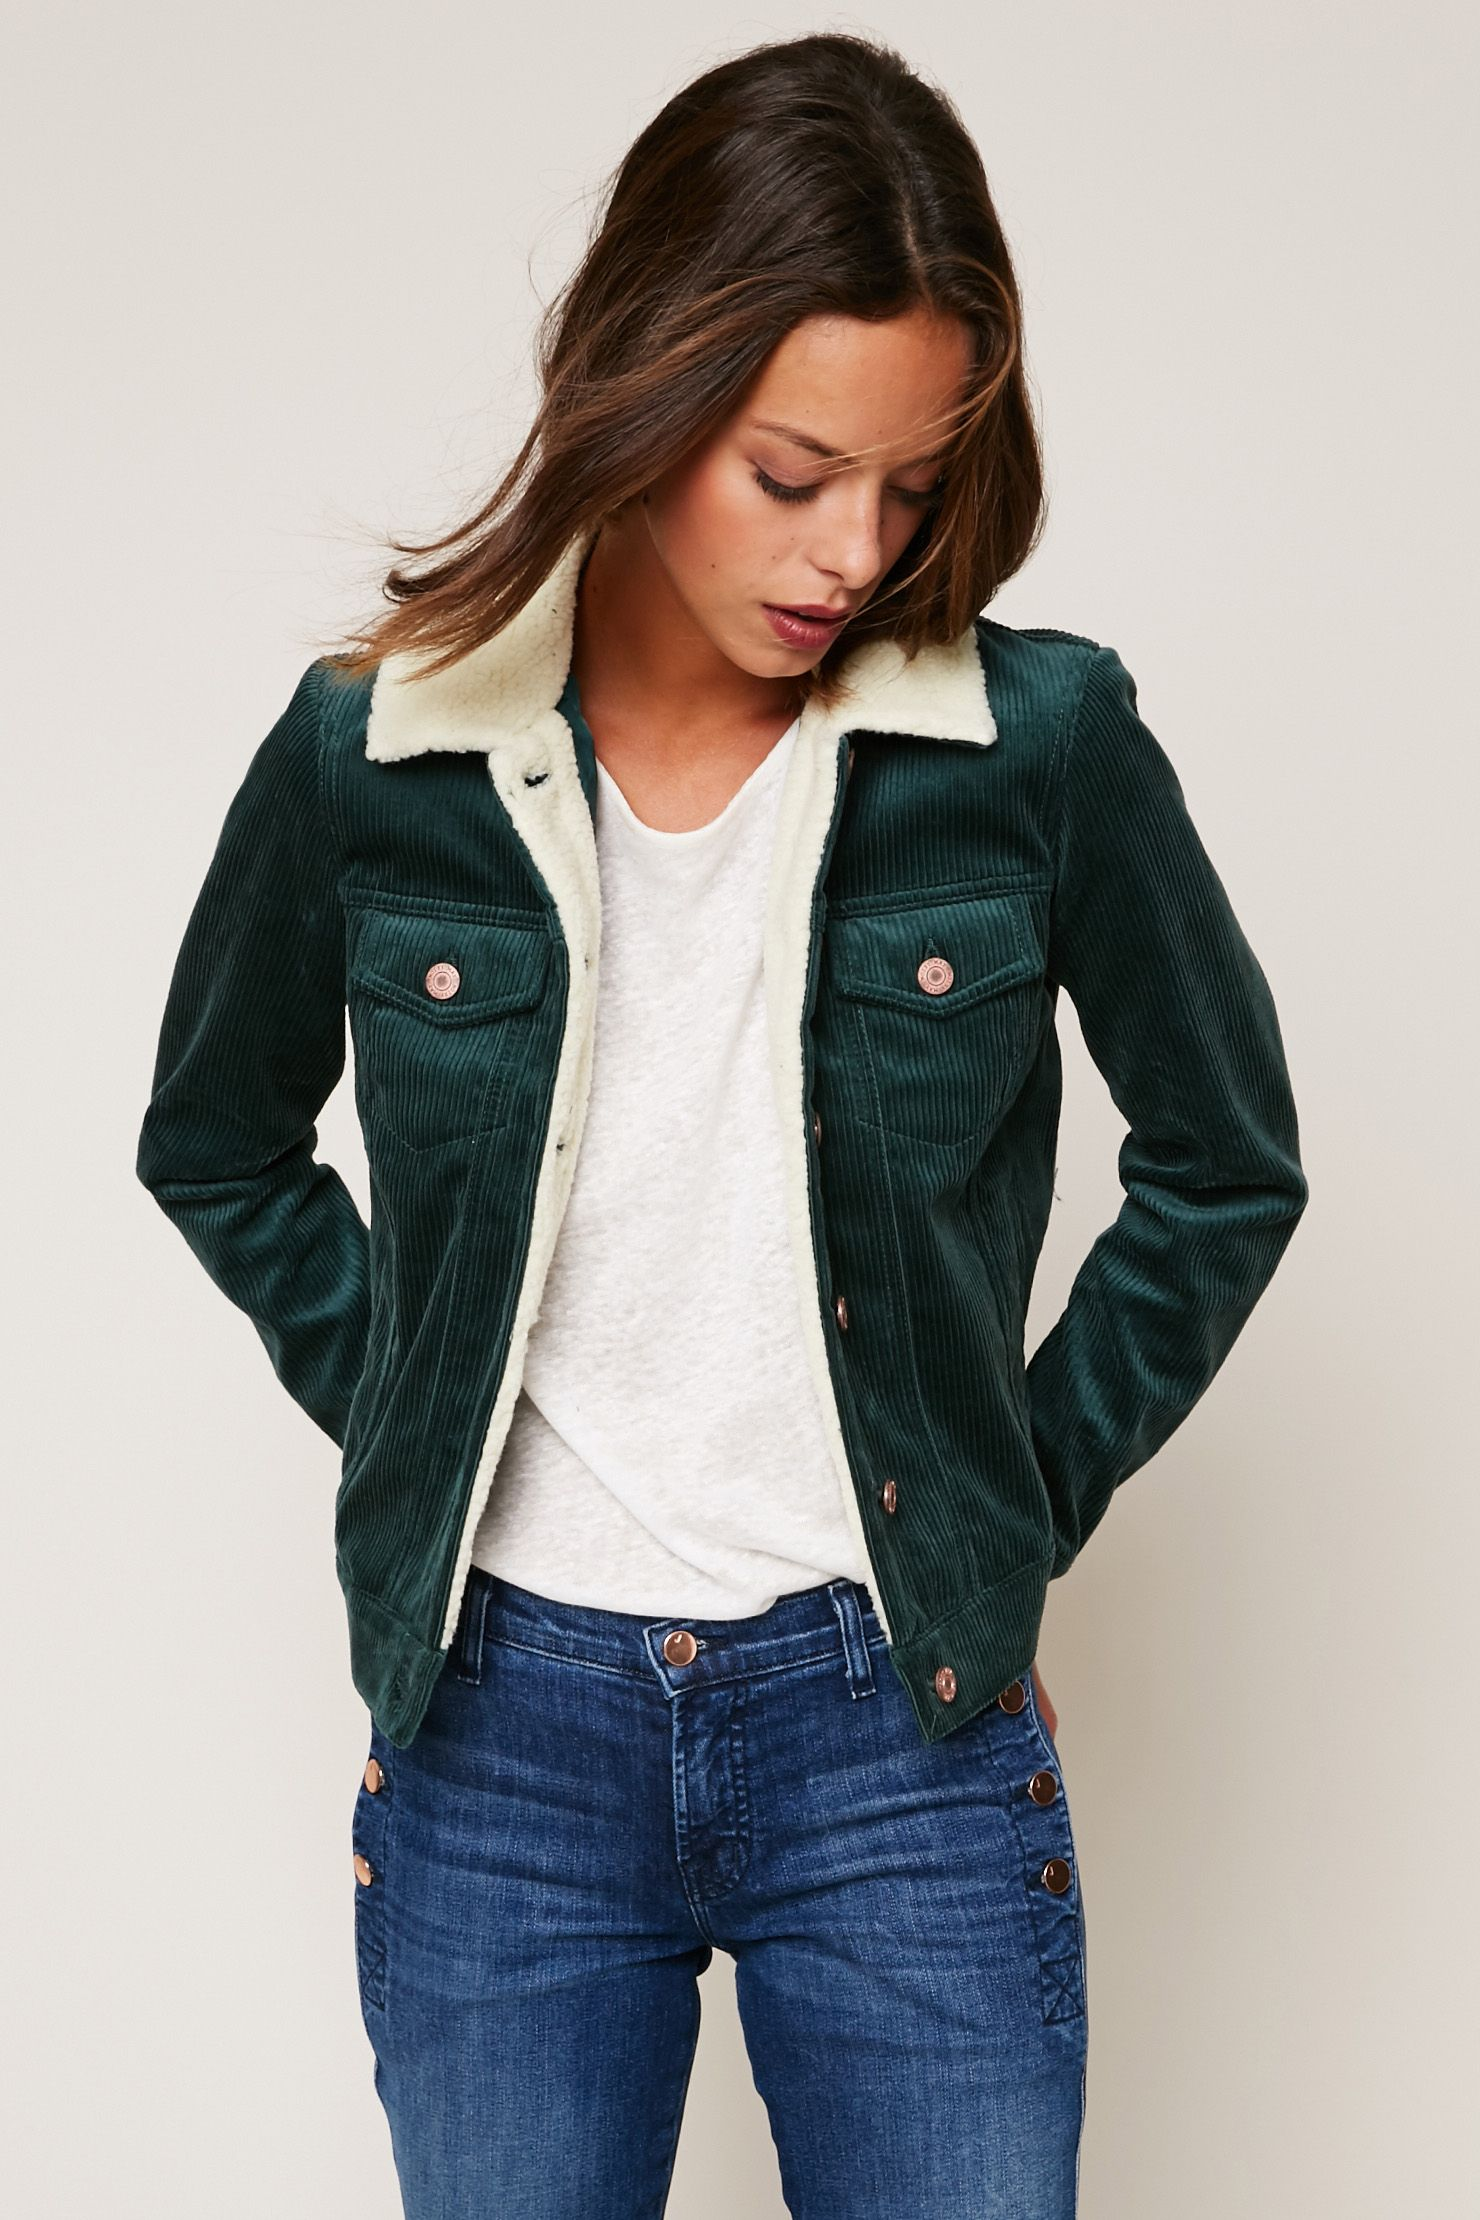 the best save off hot sales Veste en velours côtelé vert col fausse fourrure zoom en ...